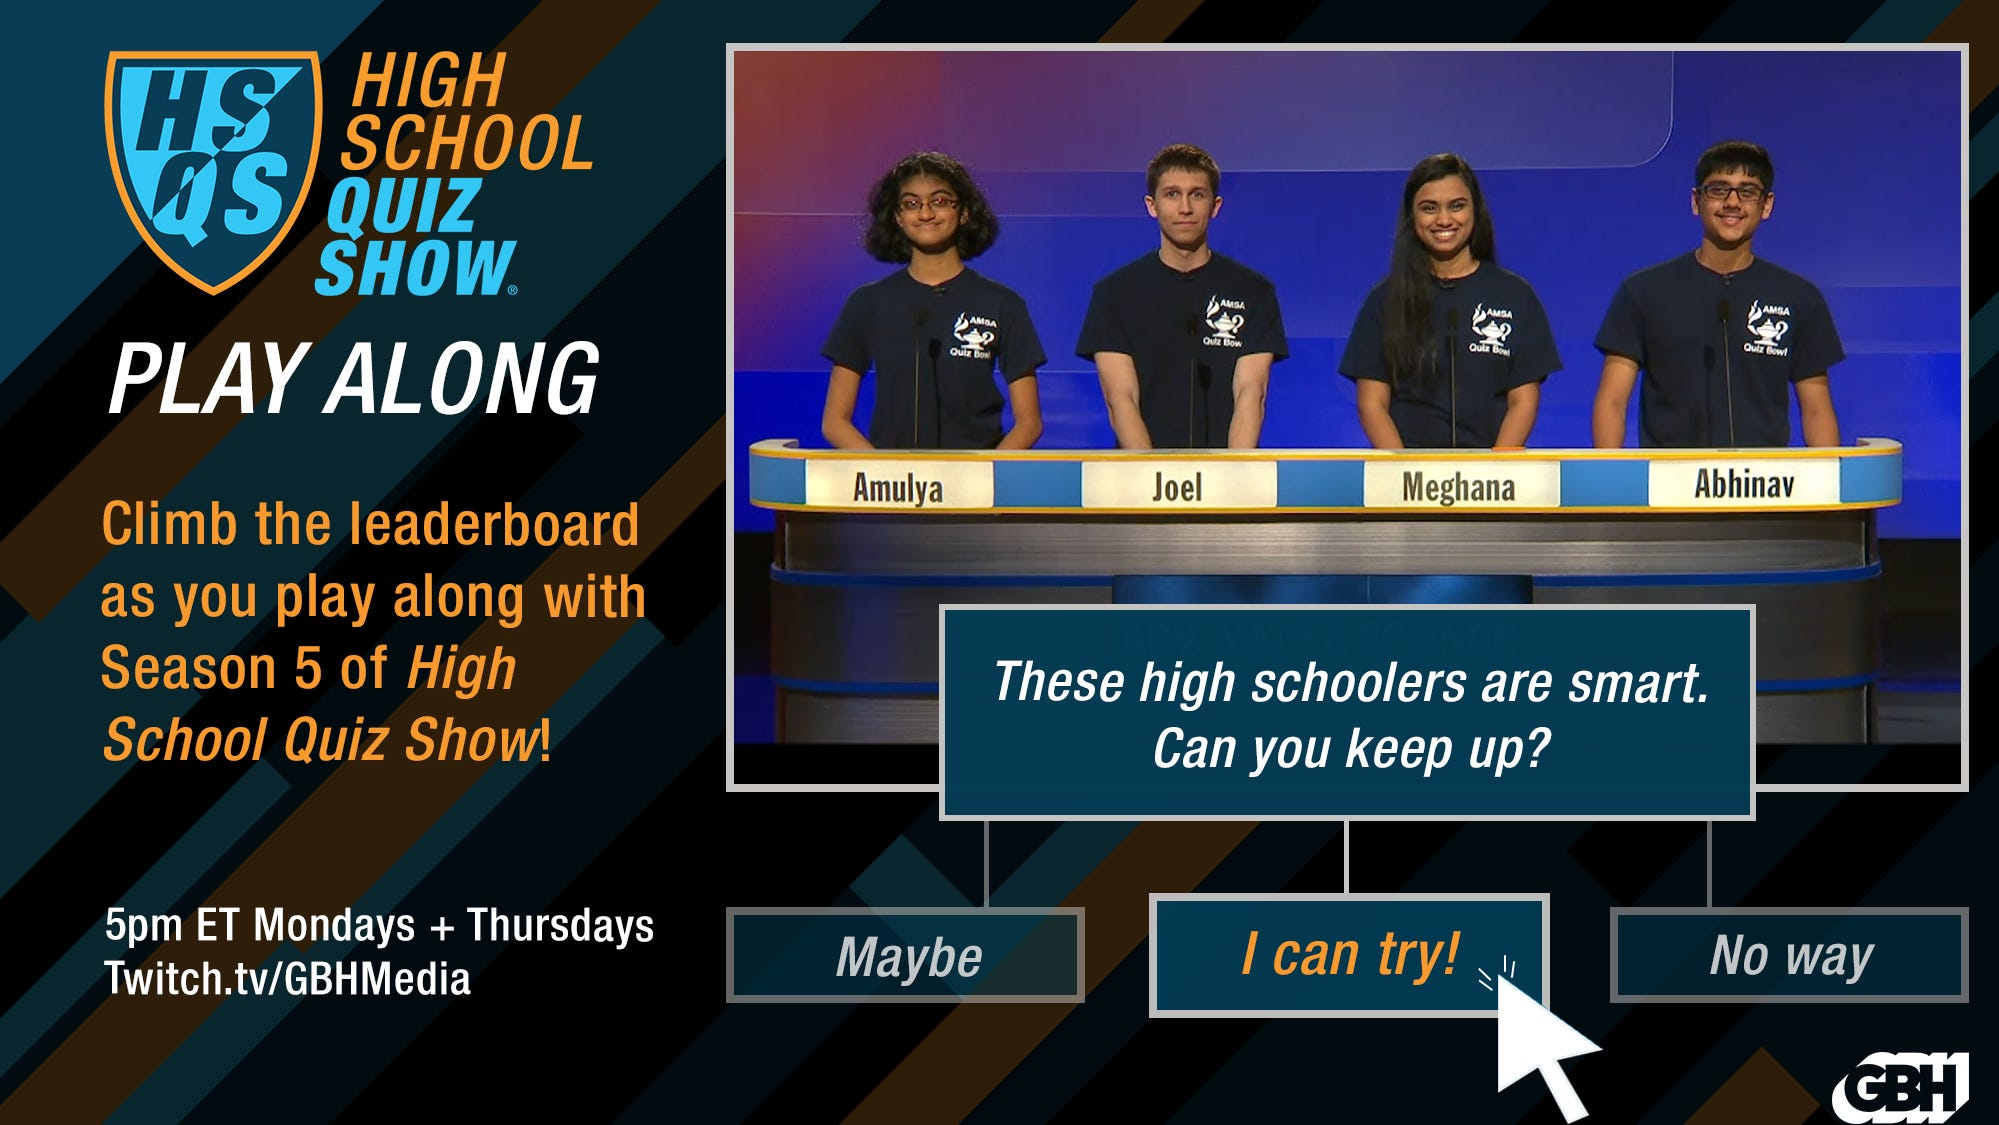 GBH's High School Quiz Show launches new interactive features on Twitch